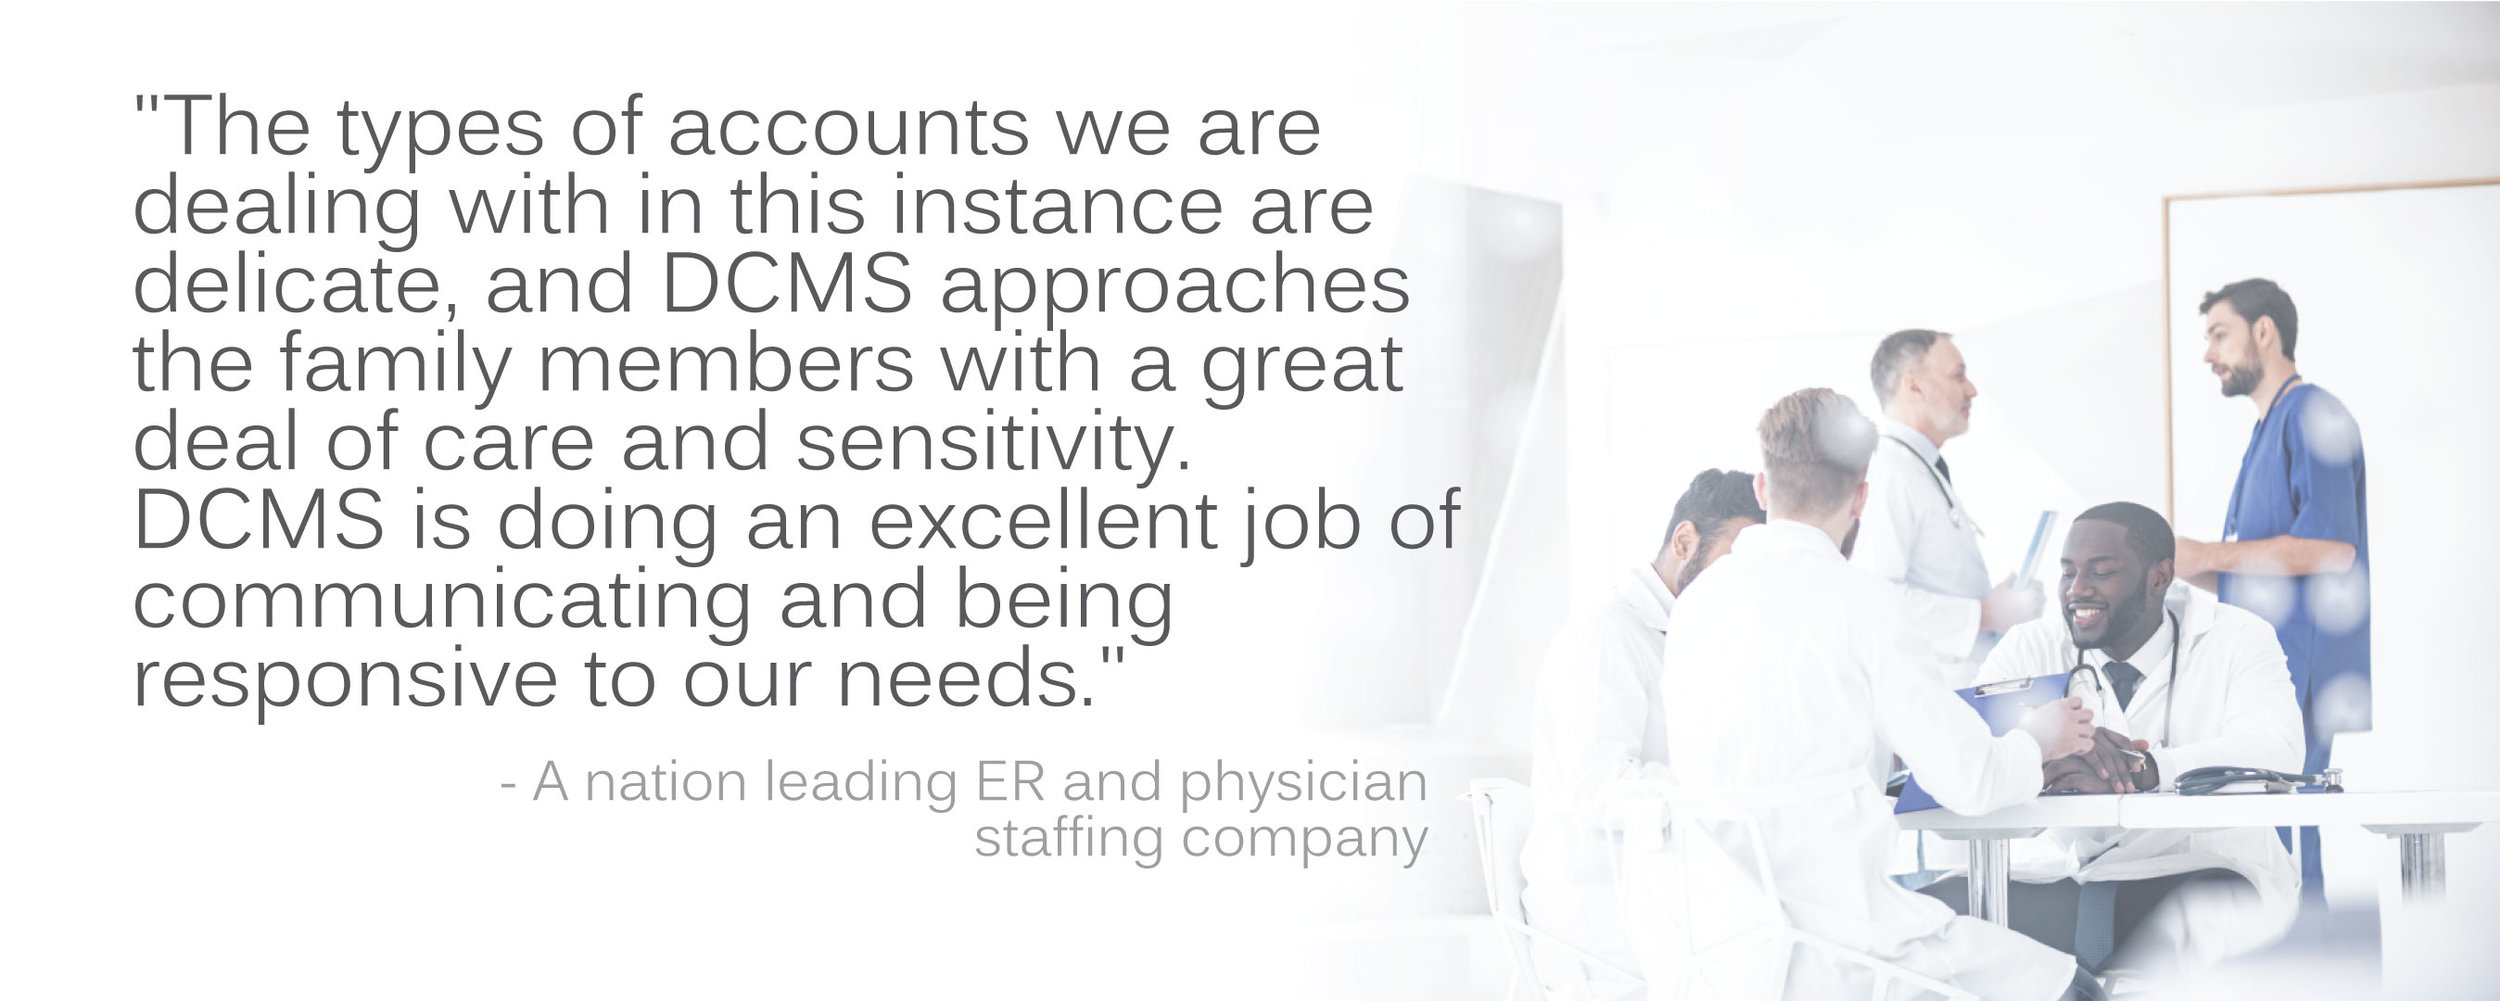 "Physician client testimonial: """"The types of accounts we are dealing with in this instance are delicate, and DCMS approaches they family members with a great deal of care and sensitivity..."""